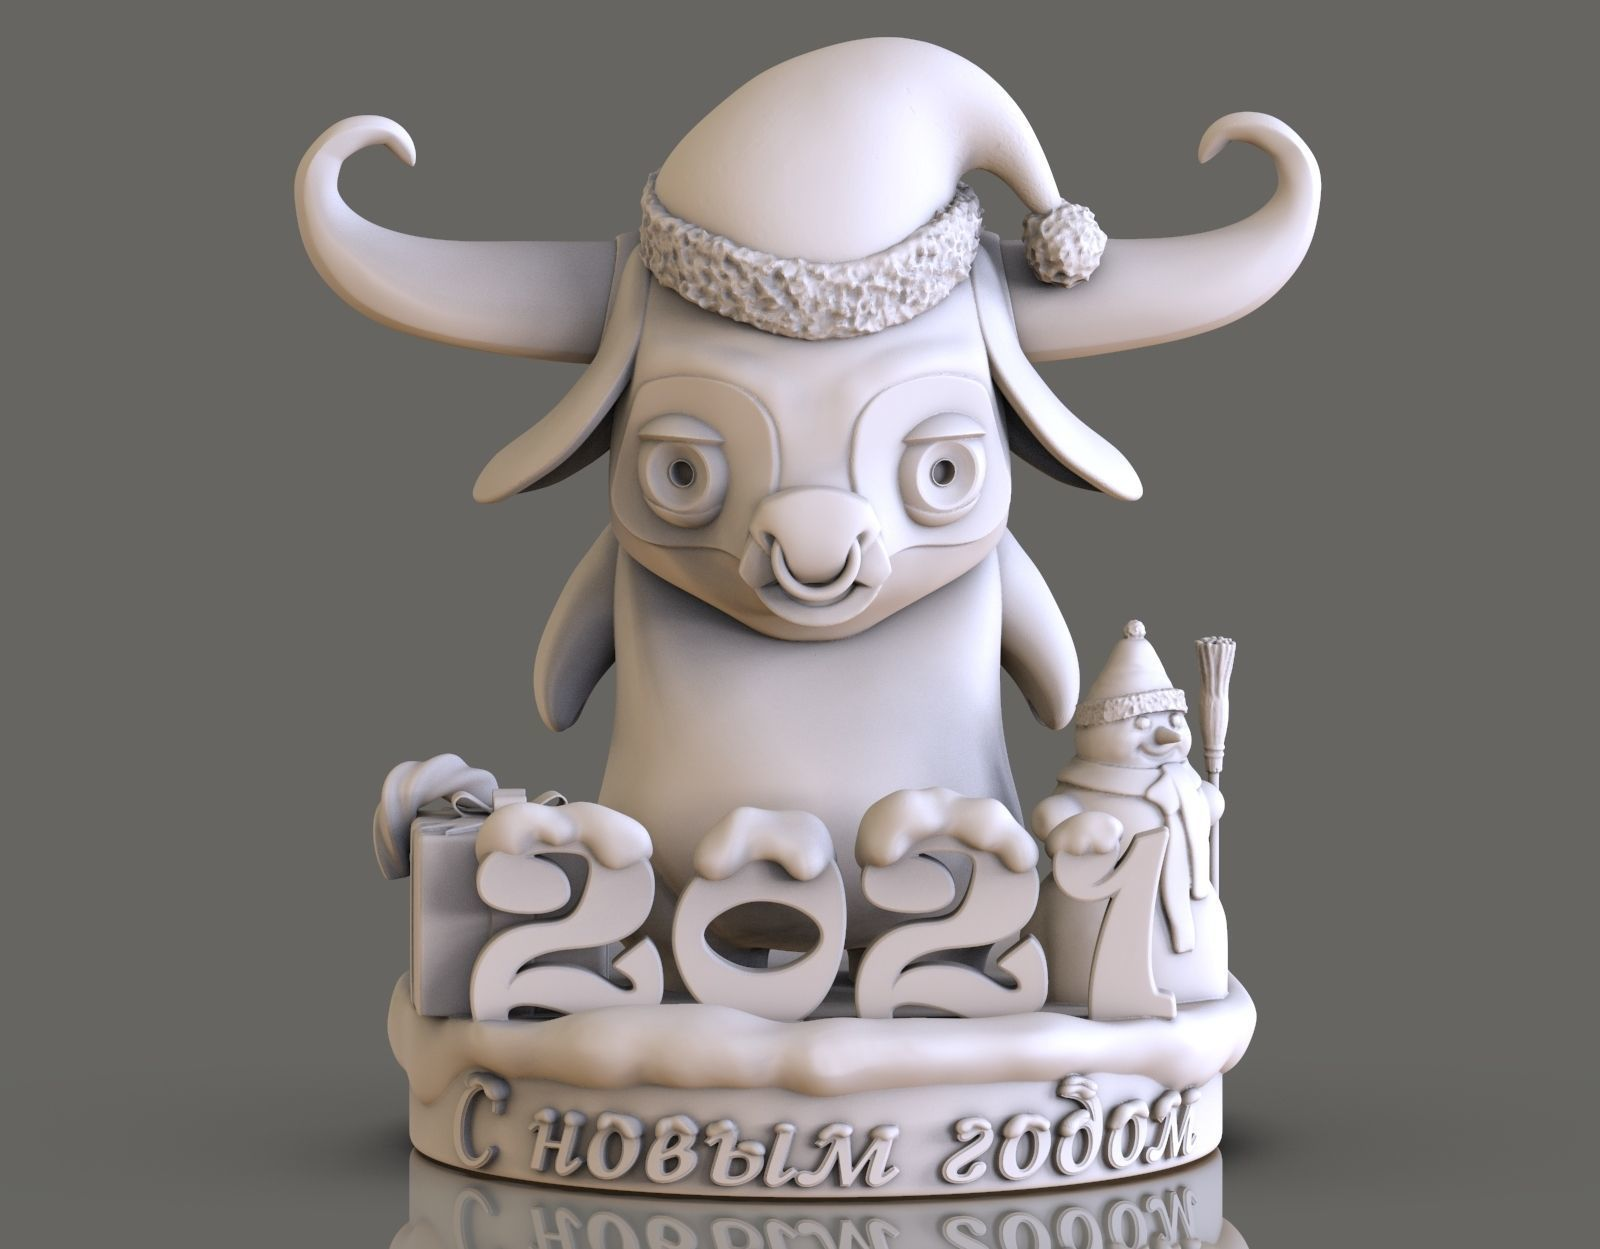 bull as a gift for the new year